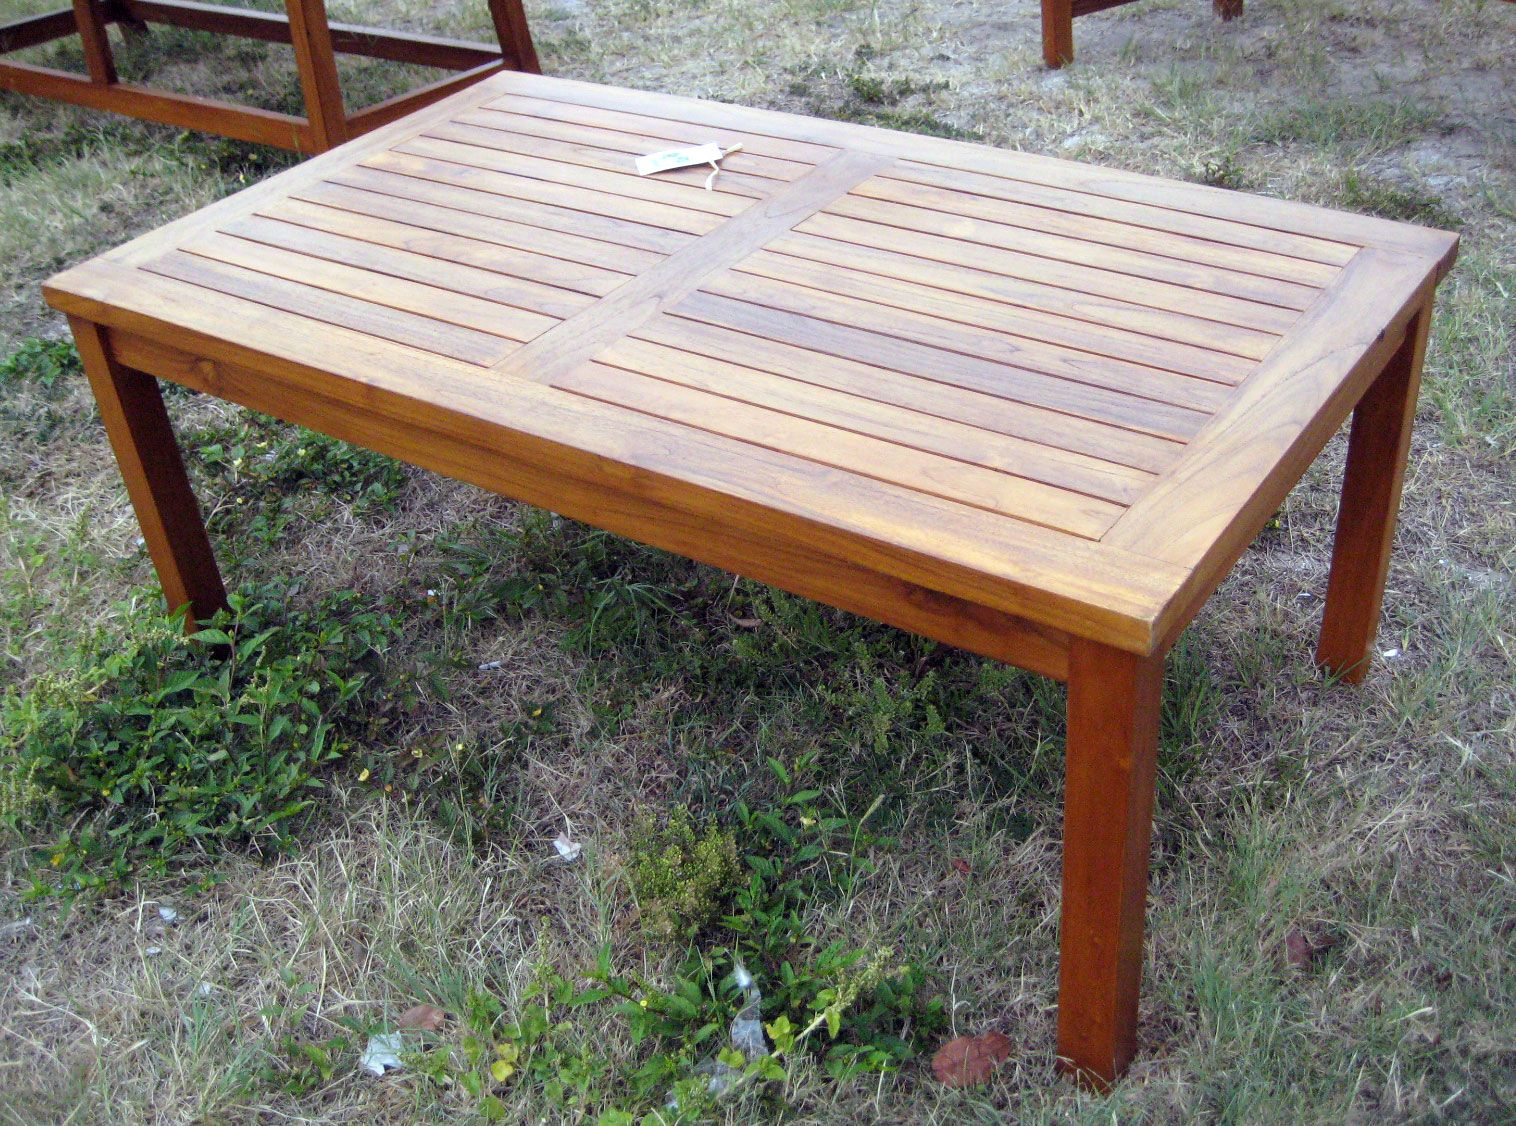 Teak outdoor coffee table building projects pinterest teak outdoor coffee table geotapseo Gallery